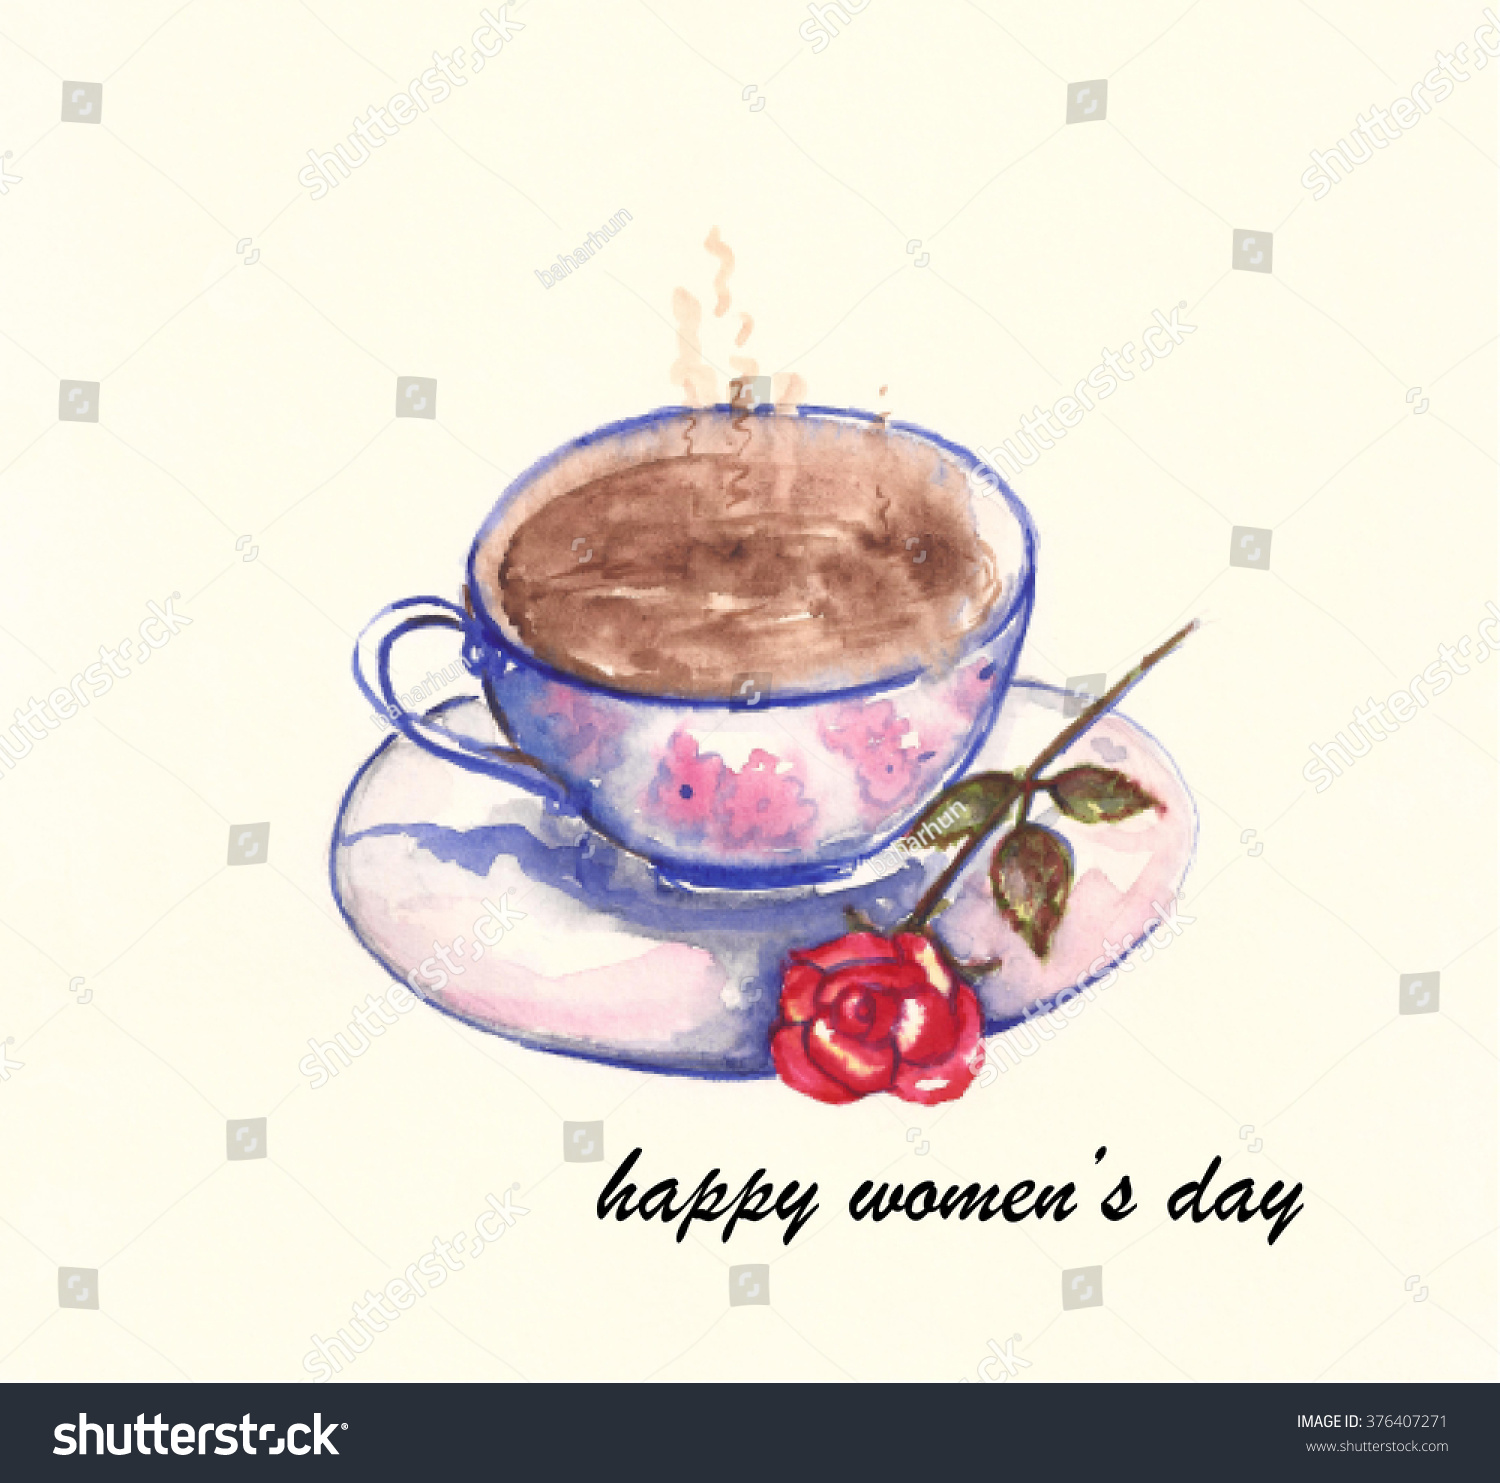 Happy womens day turkish coffee cup stock vector 376407271 happy womens day with turkish coffee cup and red rose watercolor painting buycottarizona Image collections